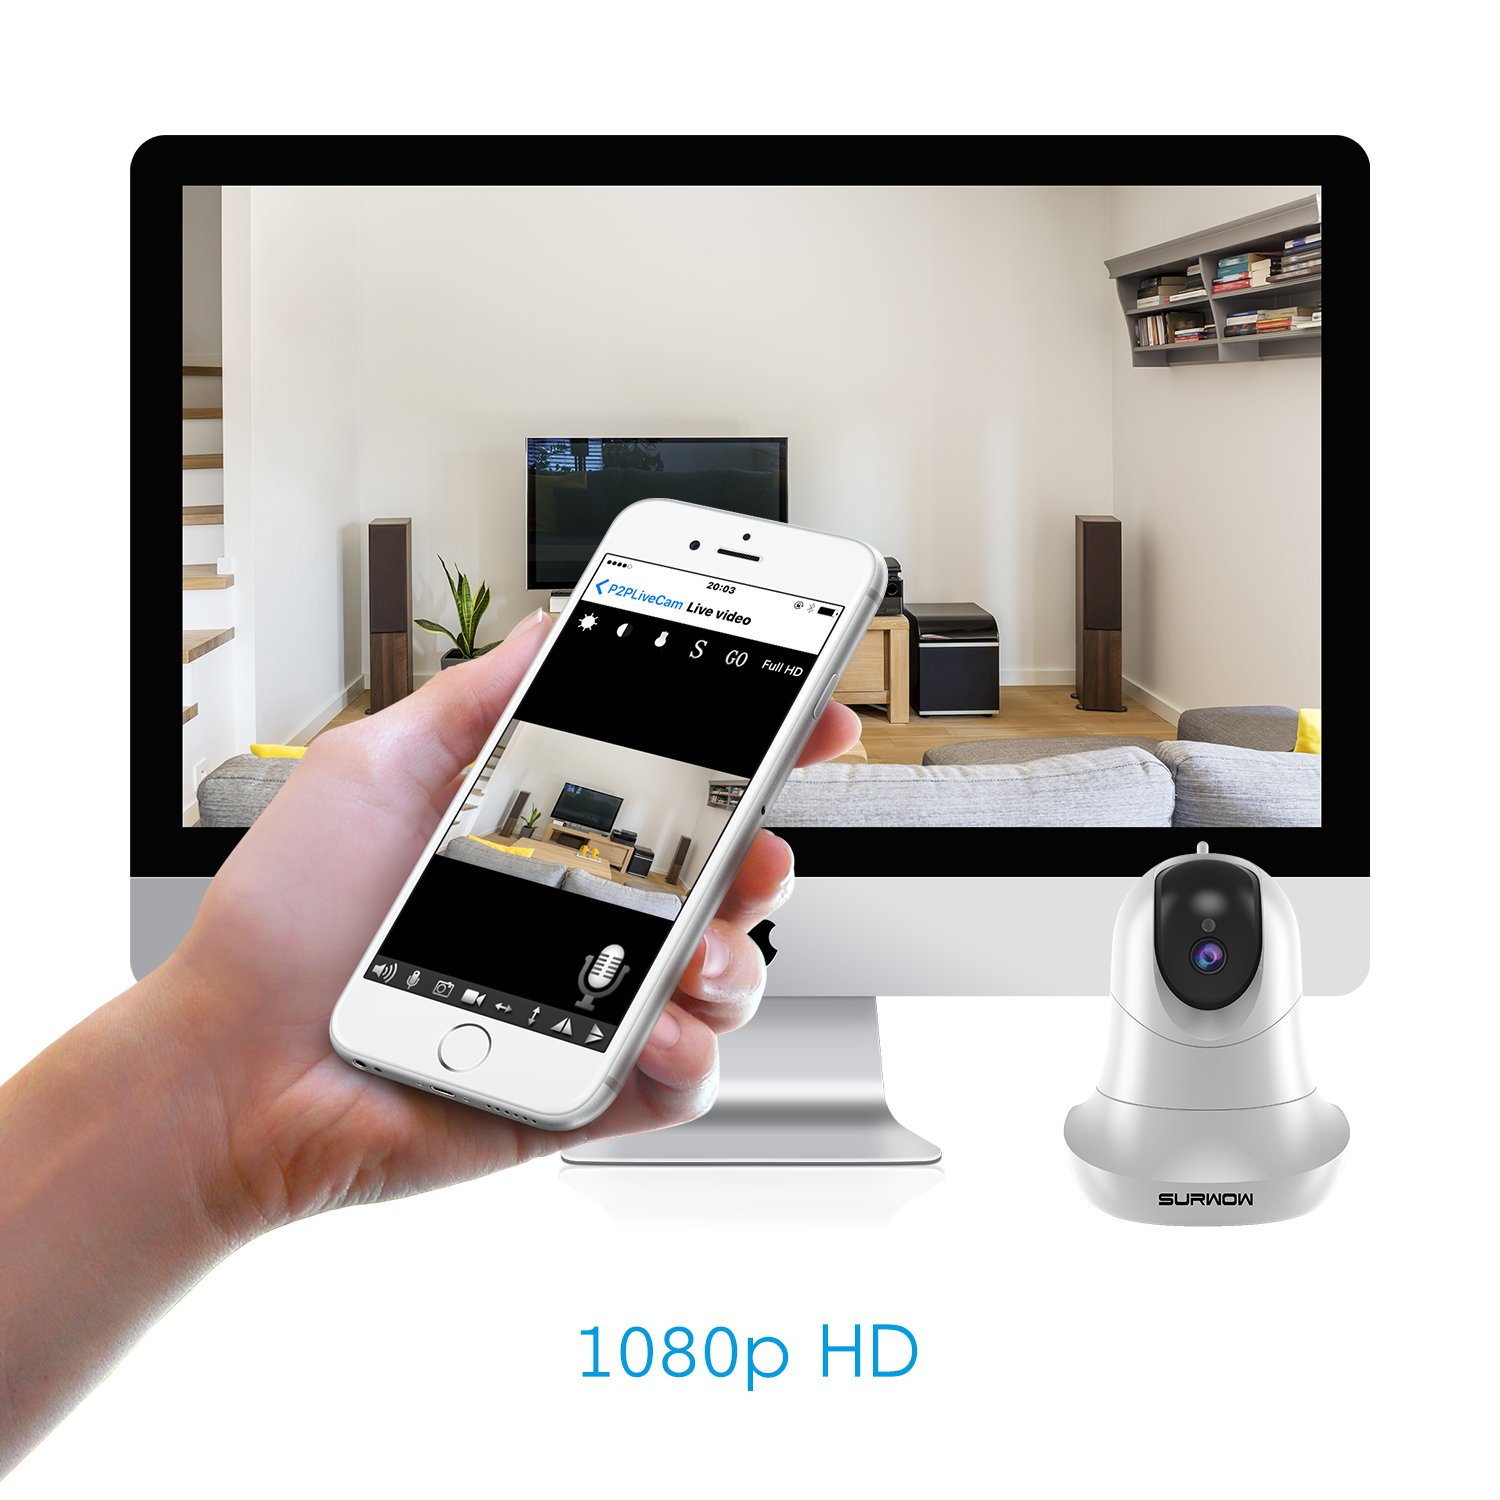 SURWOW Wireless IP Camera -1080P Wifi Surveillance Cameras Wireless HD with 2 Megapixel,Night Vision, Zoom/Pan/Tilt Control, Two-Way Audio for Baby,Pet Monitor and Home Security (WHITE) by SURWOW (Image #3)